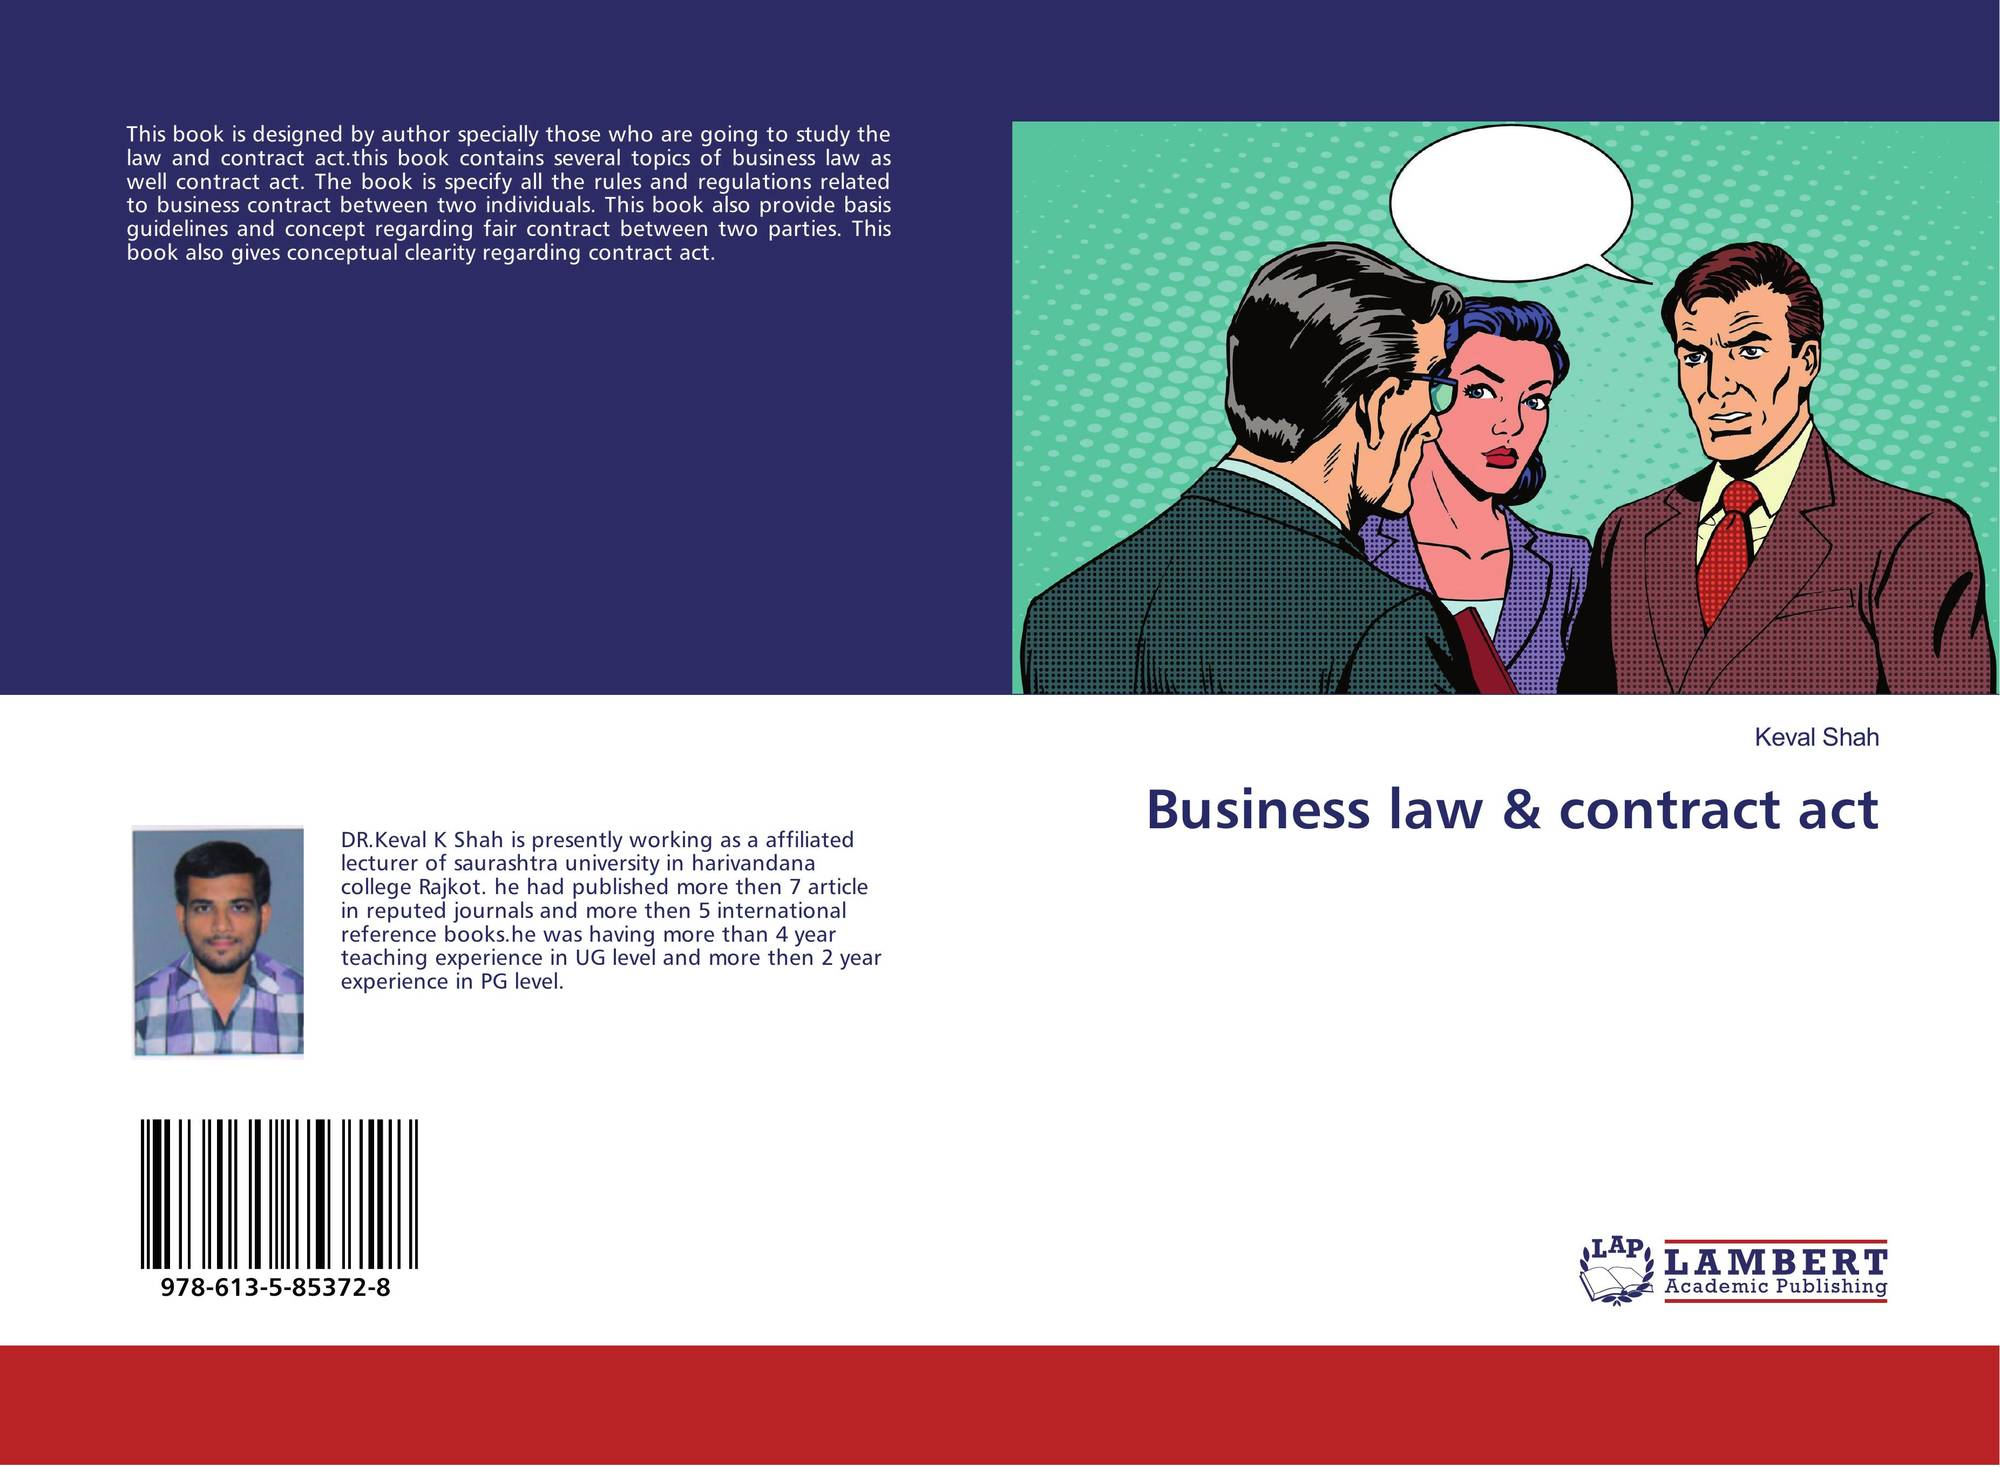 business law contract law A business lawyer will advise you on many different aspects relating to business, such as regulation compliance, business incorporation, and legal liability the sooner you retain a business attorney, the better your lawyer will make sure that you set up your business properly, create contracts for .